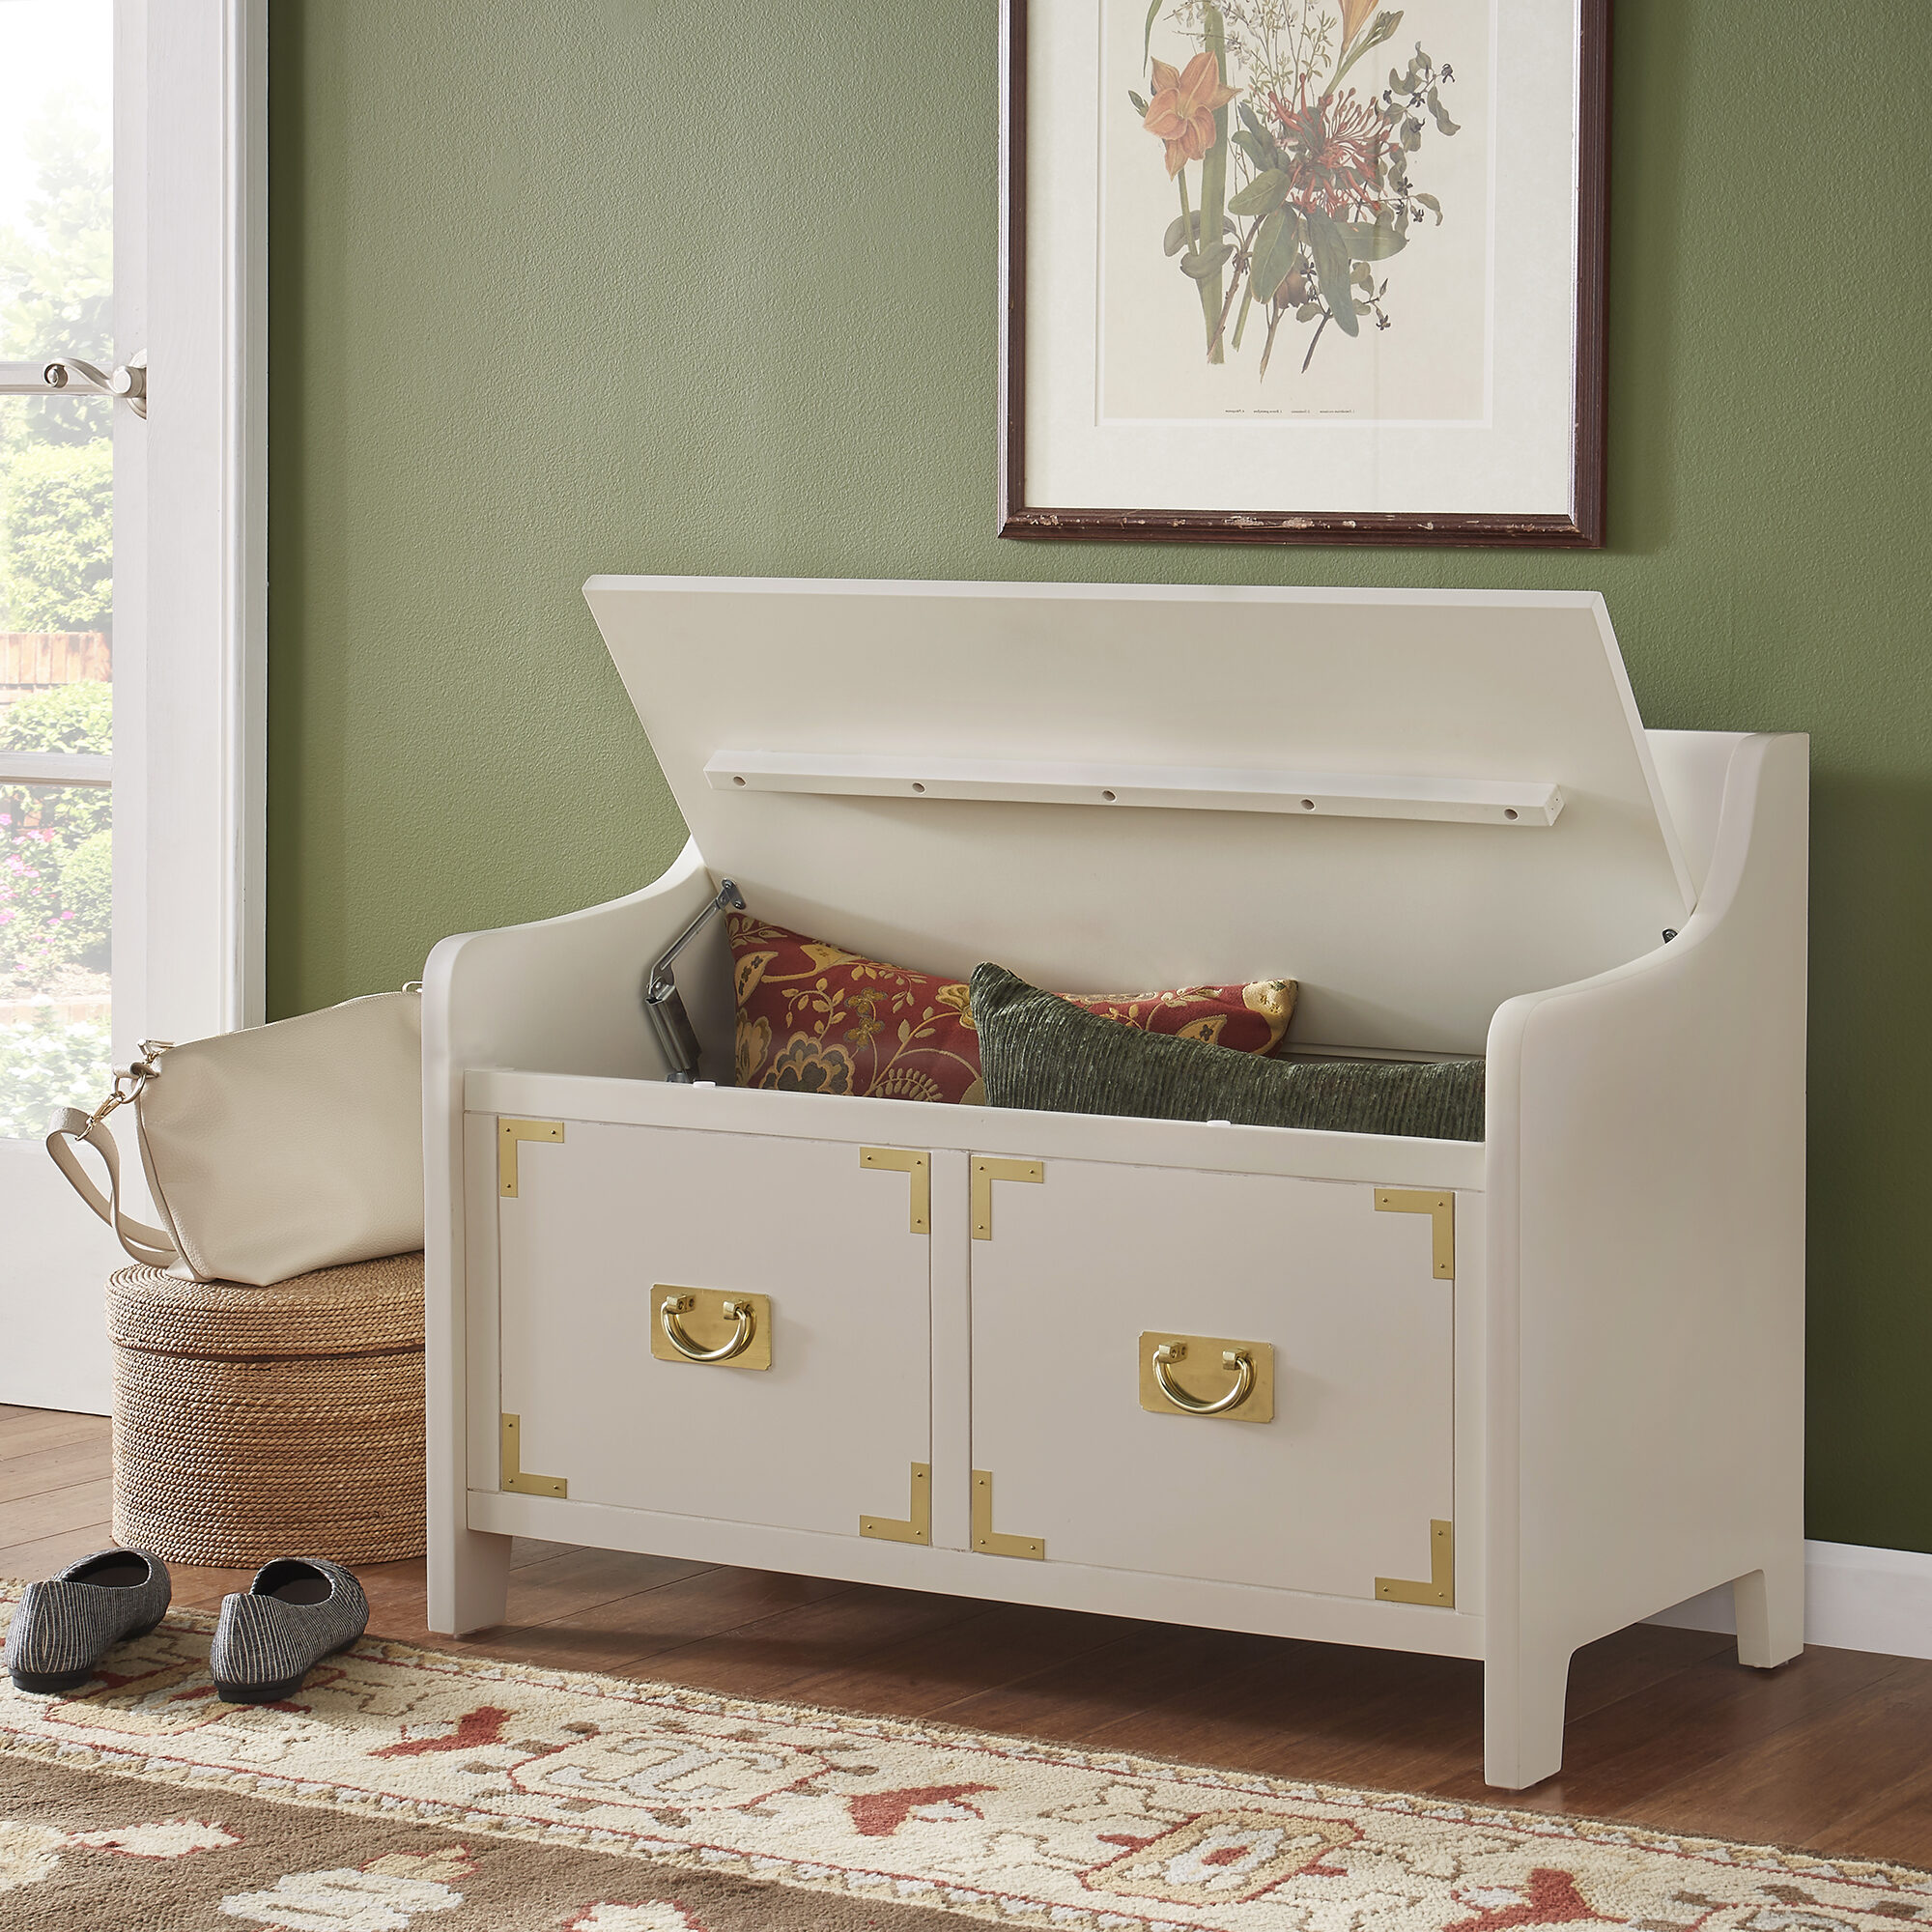 The final kids' bedroom idea we have is to get a toybox of sorts for your child. In this picture, we have a white, lift-top storage bench. The seat of the bench can be lifted to reveal an interior compartment, perfect for discreetly storing your child's toys.